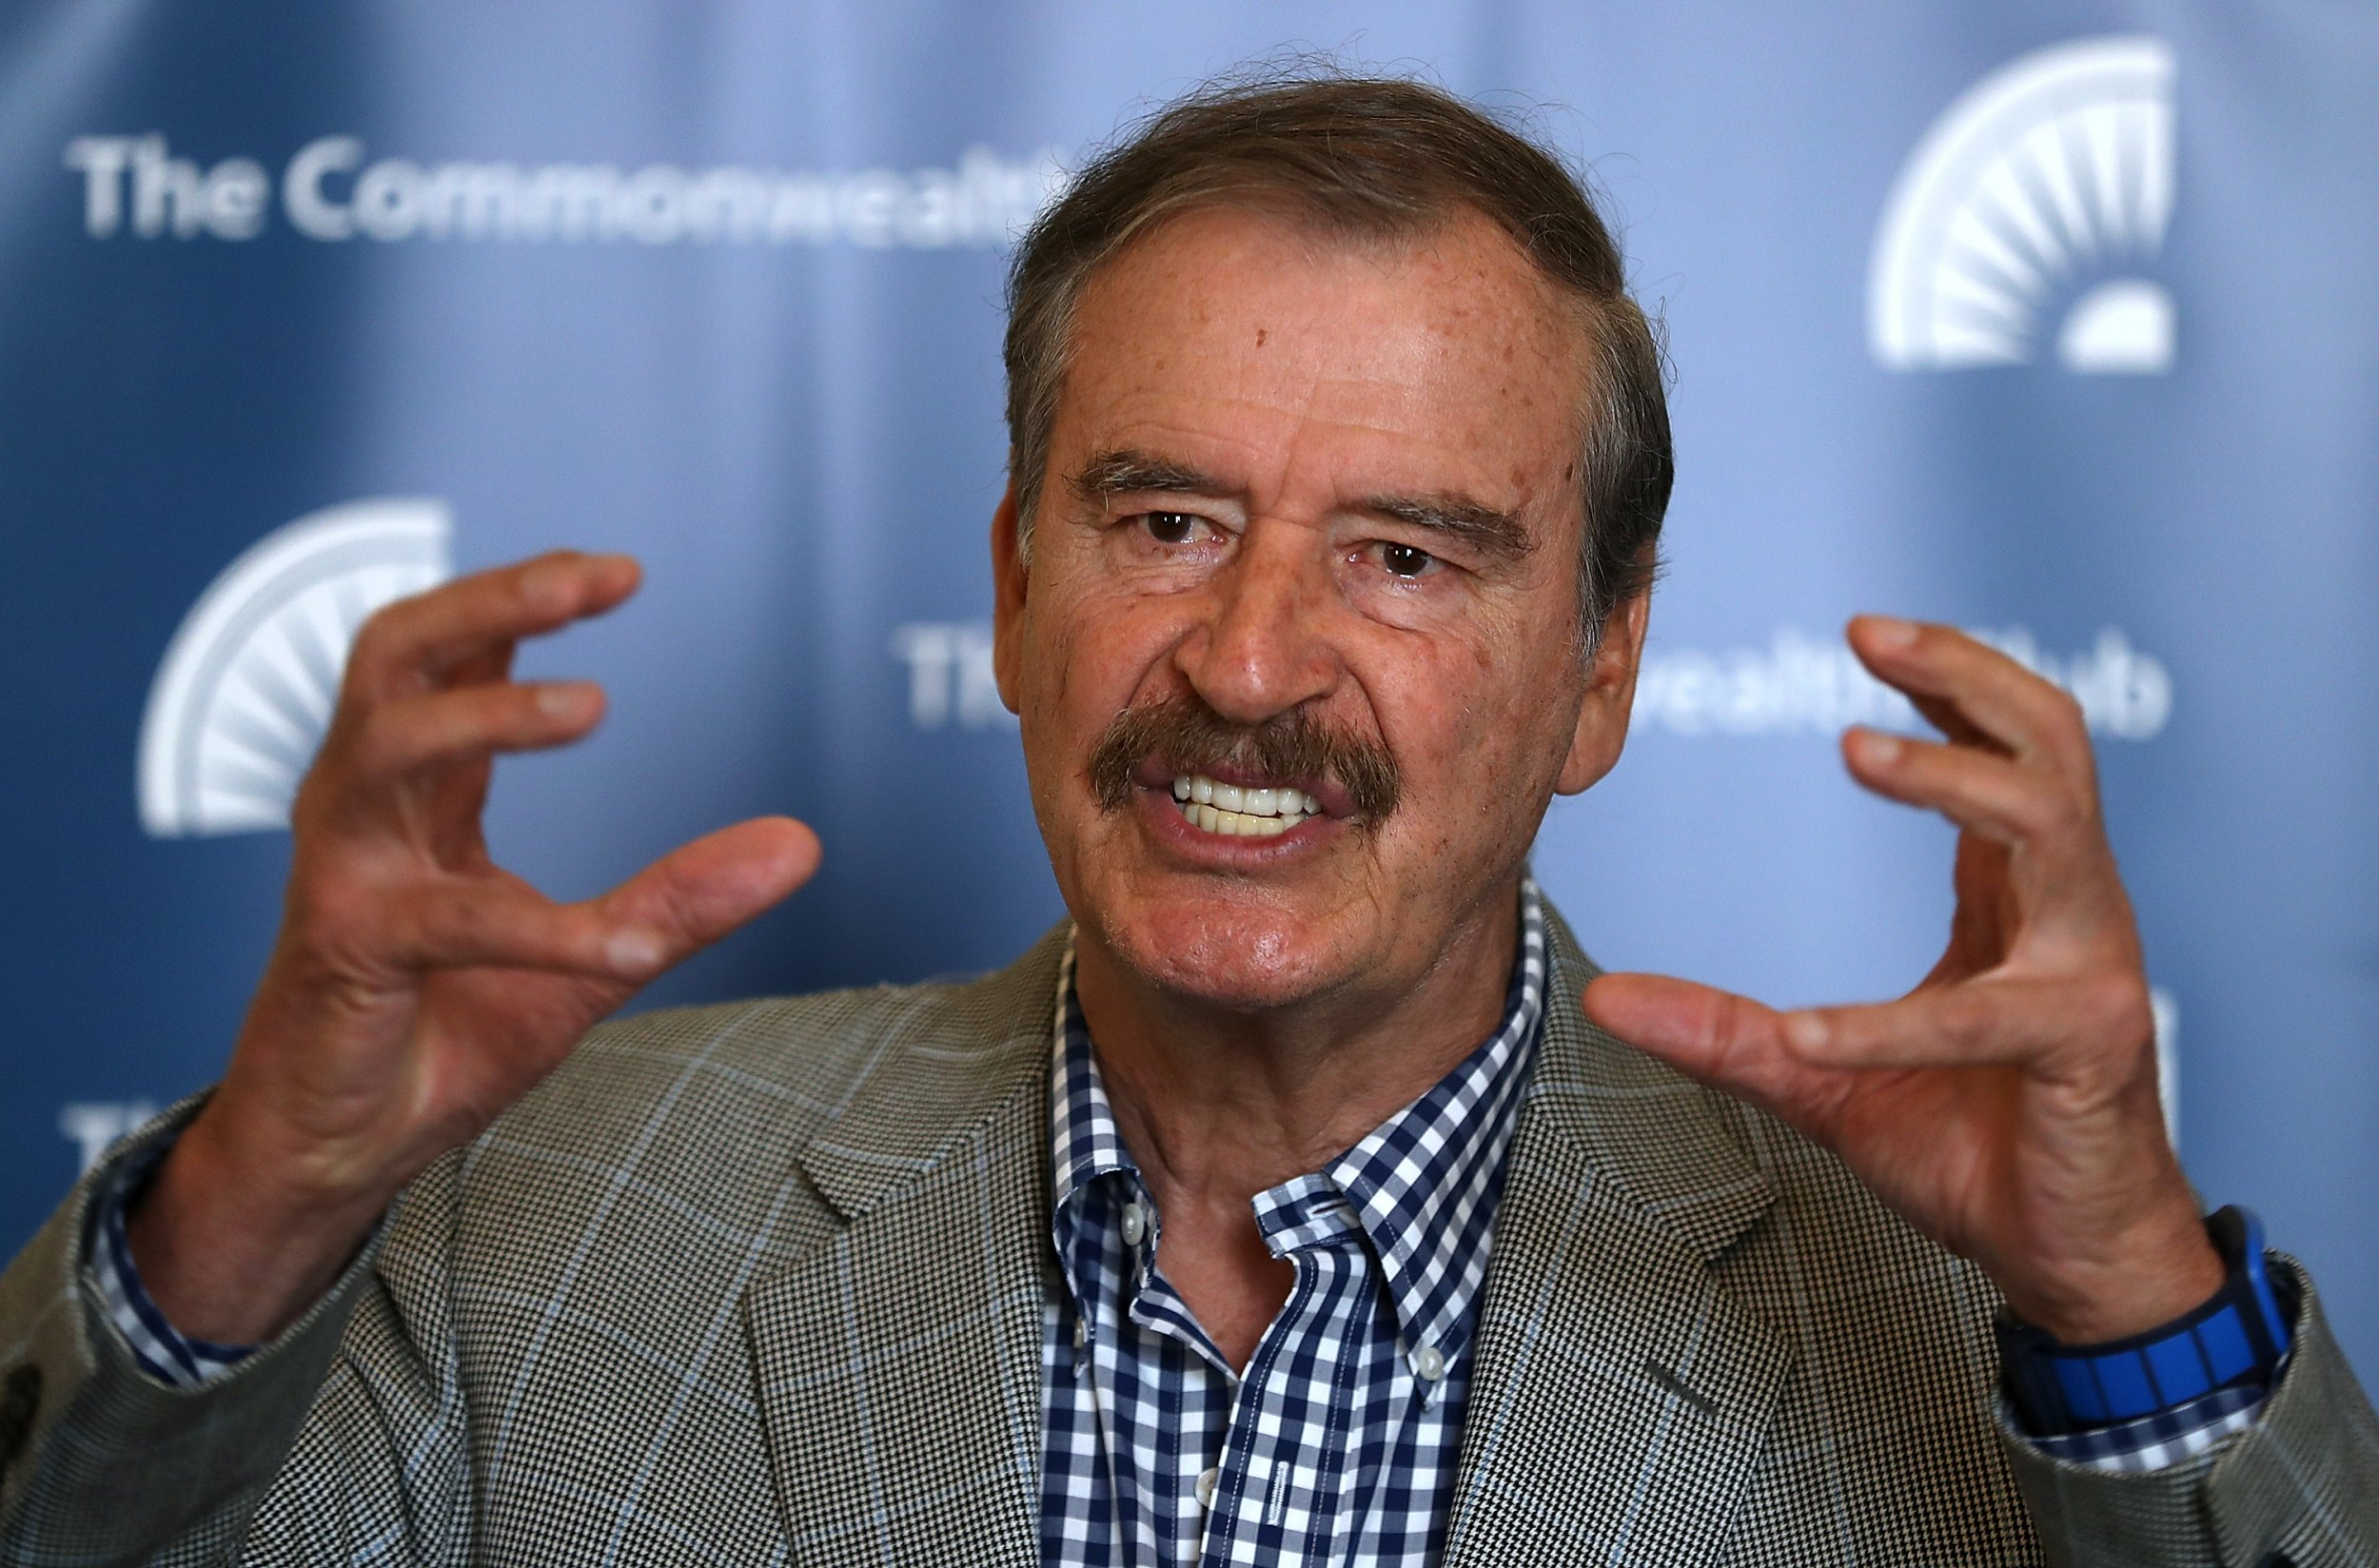 Former Mexico President Vicente Fox to Trump: 'You've Got to Get Your Sh*t Together' In Immigration Debate